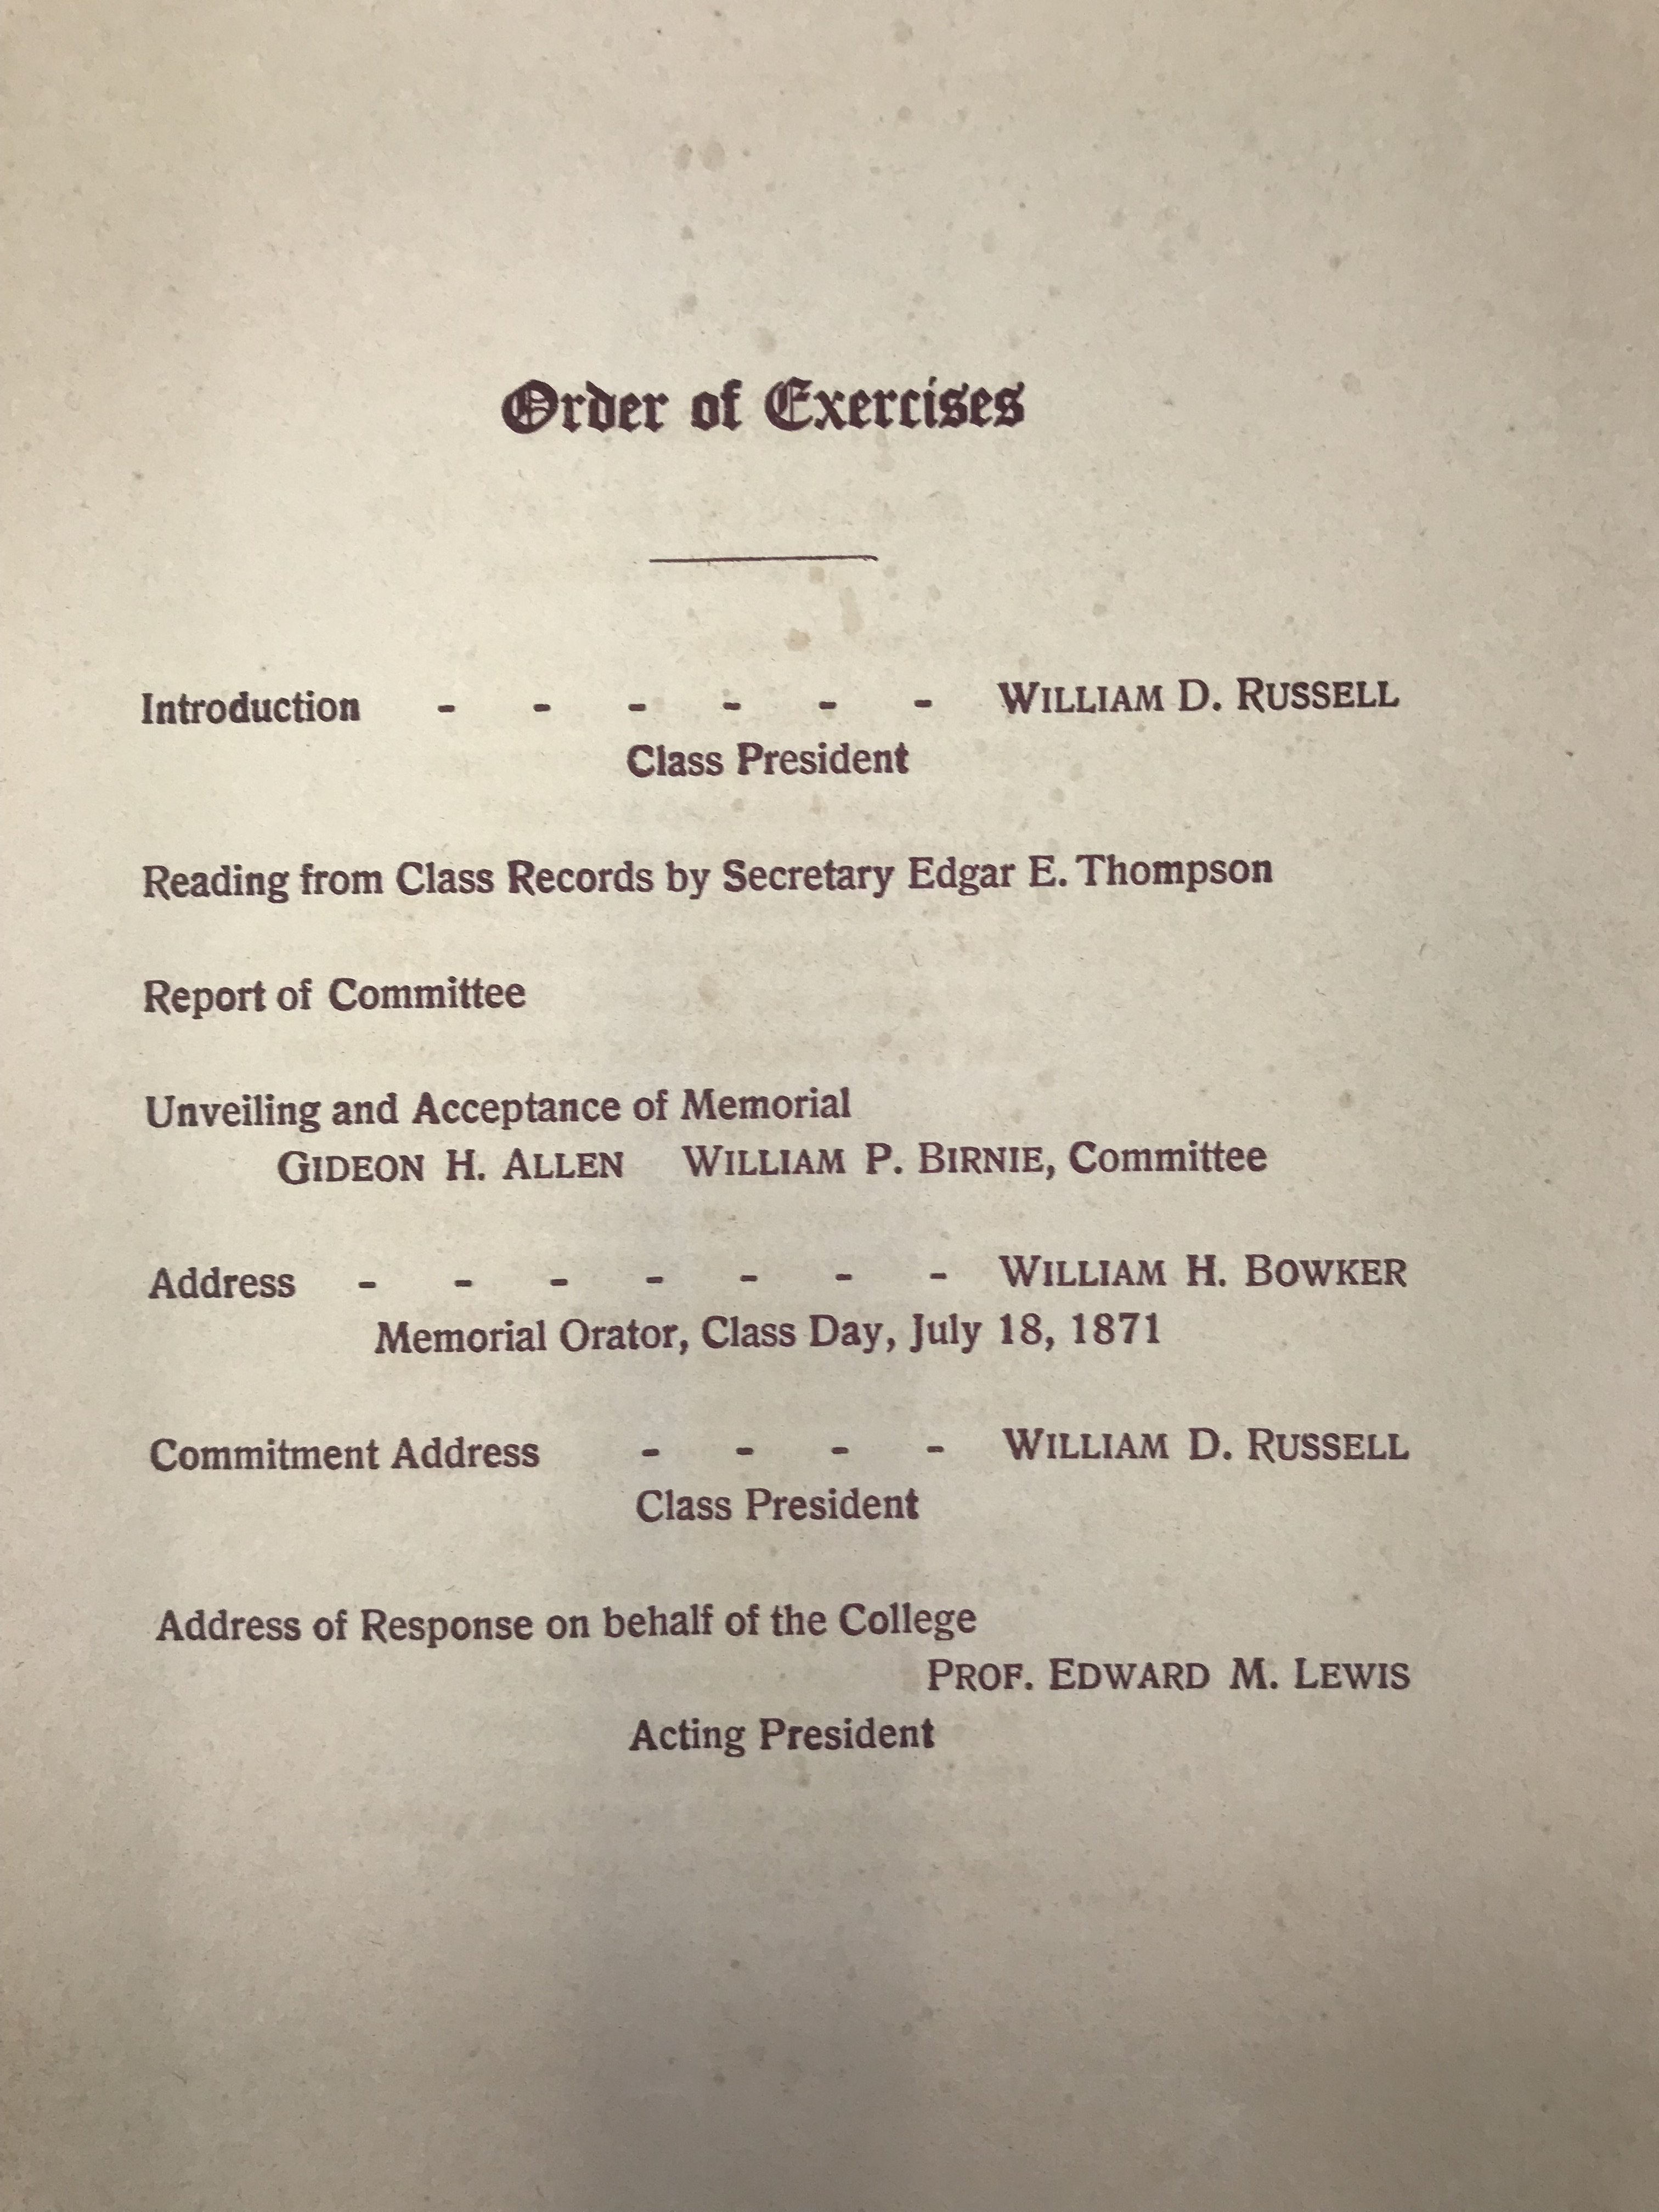 1913 Dedication Program, inside right, from Physical Plant: Subject Files, University Archives (RG 36/50).